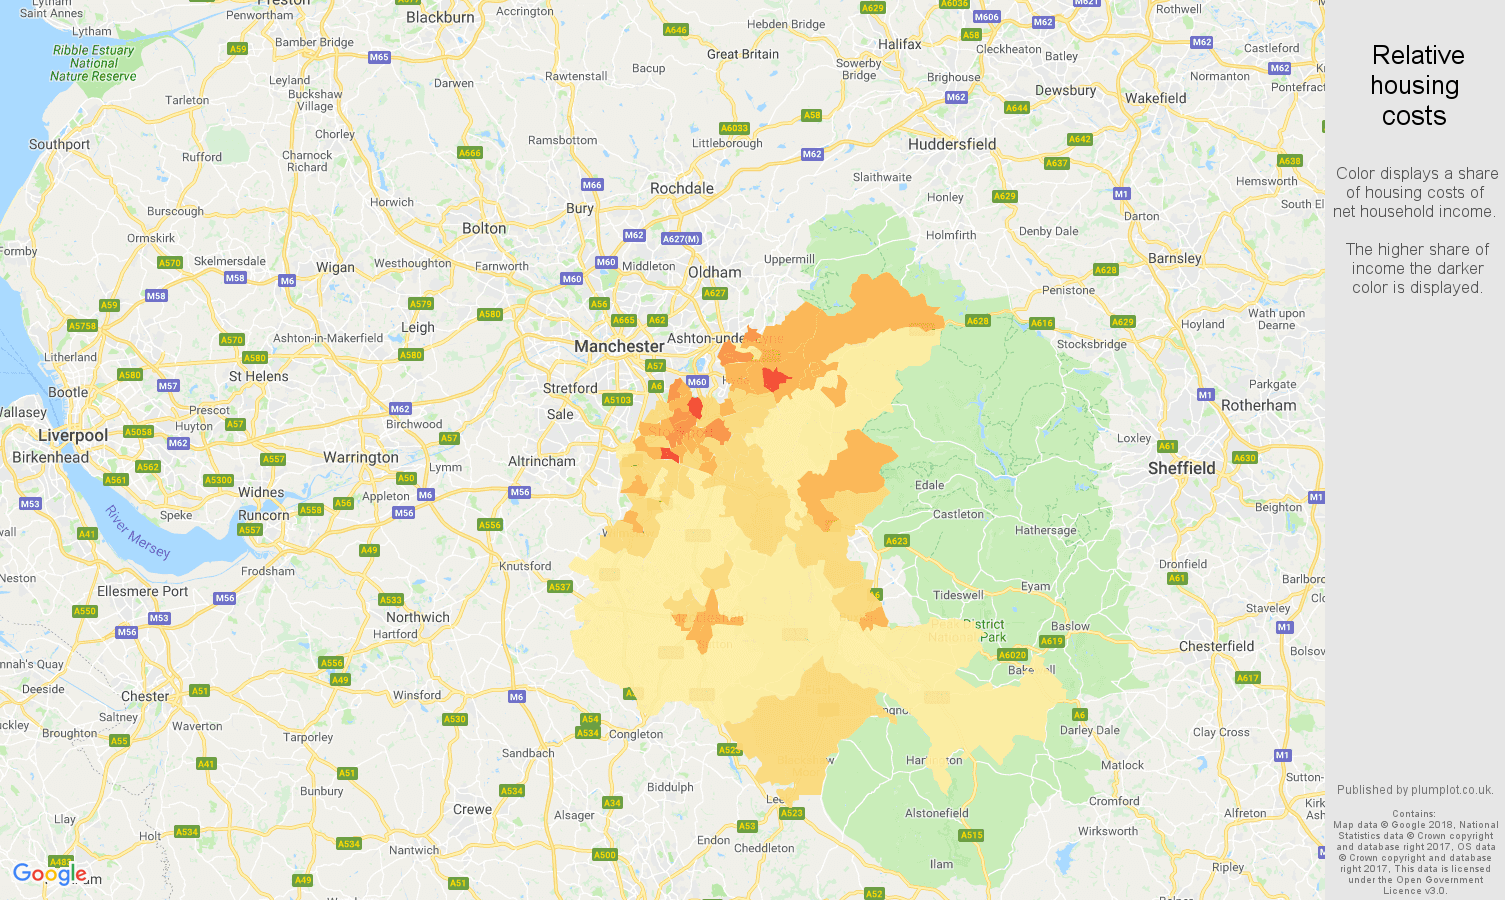 Stockport relative housing costs map